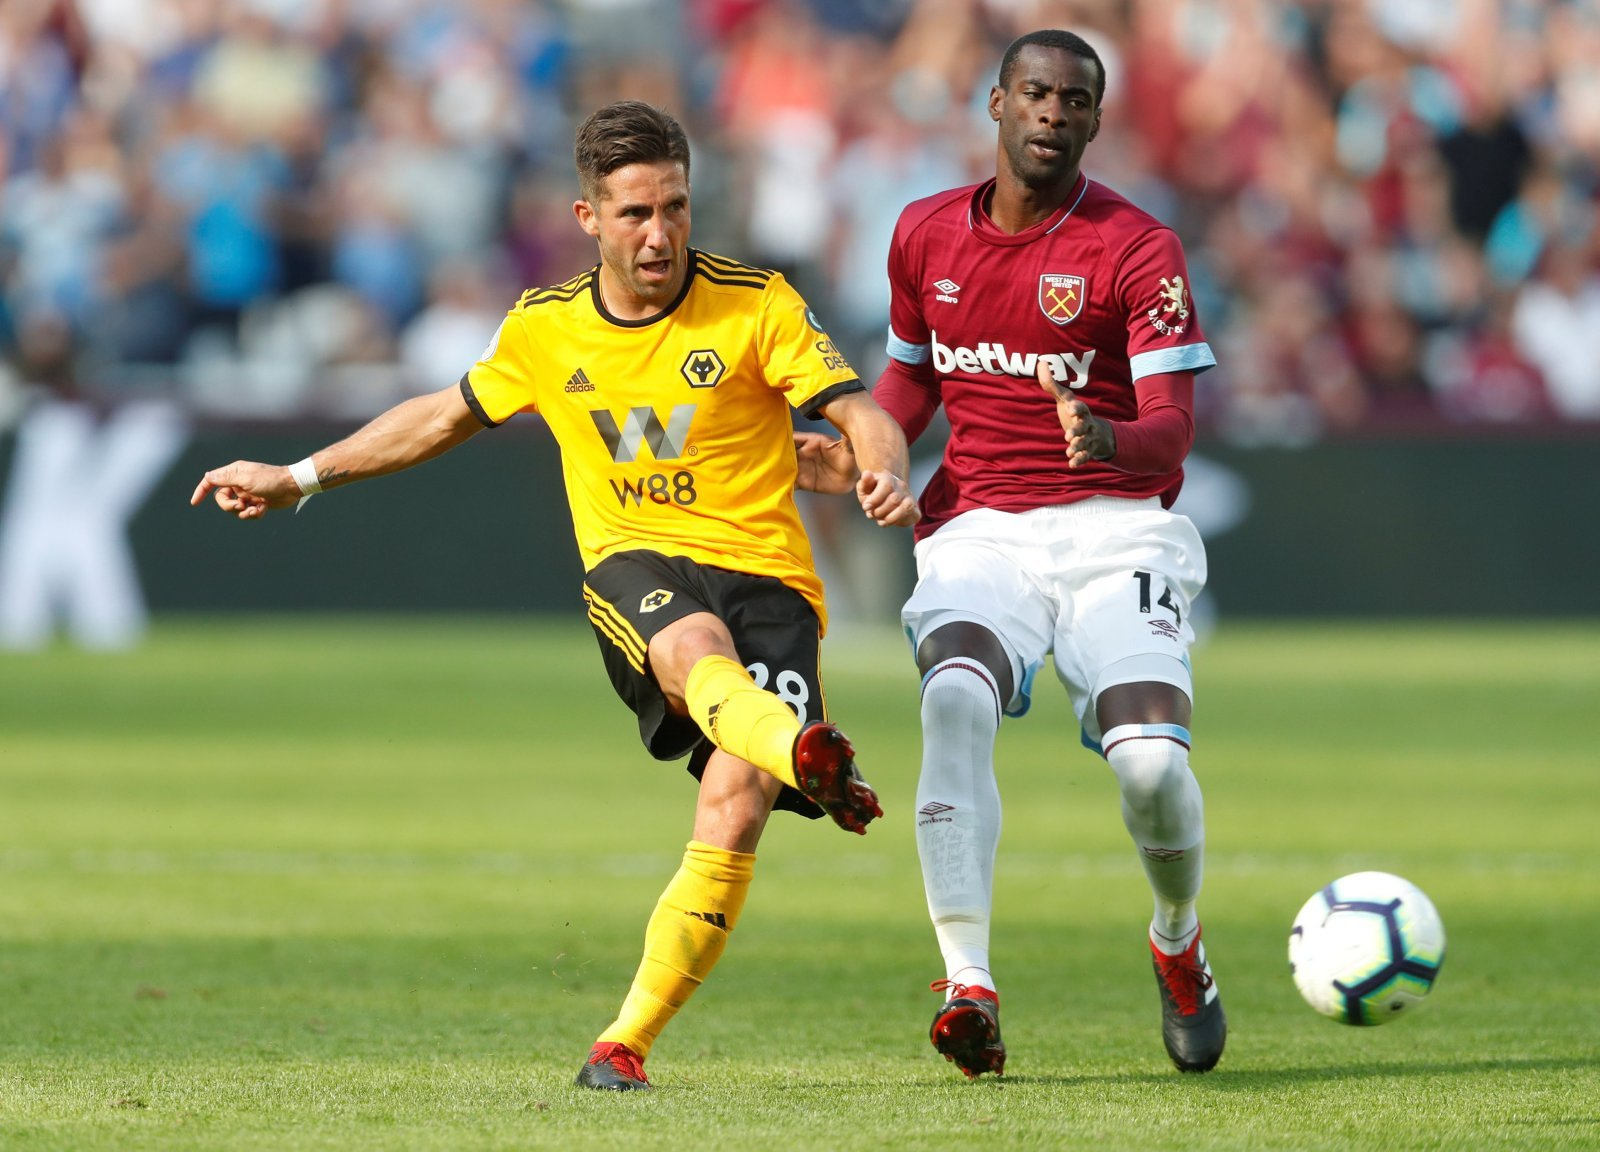 Bull spot on about Wolves new boy Moutinho